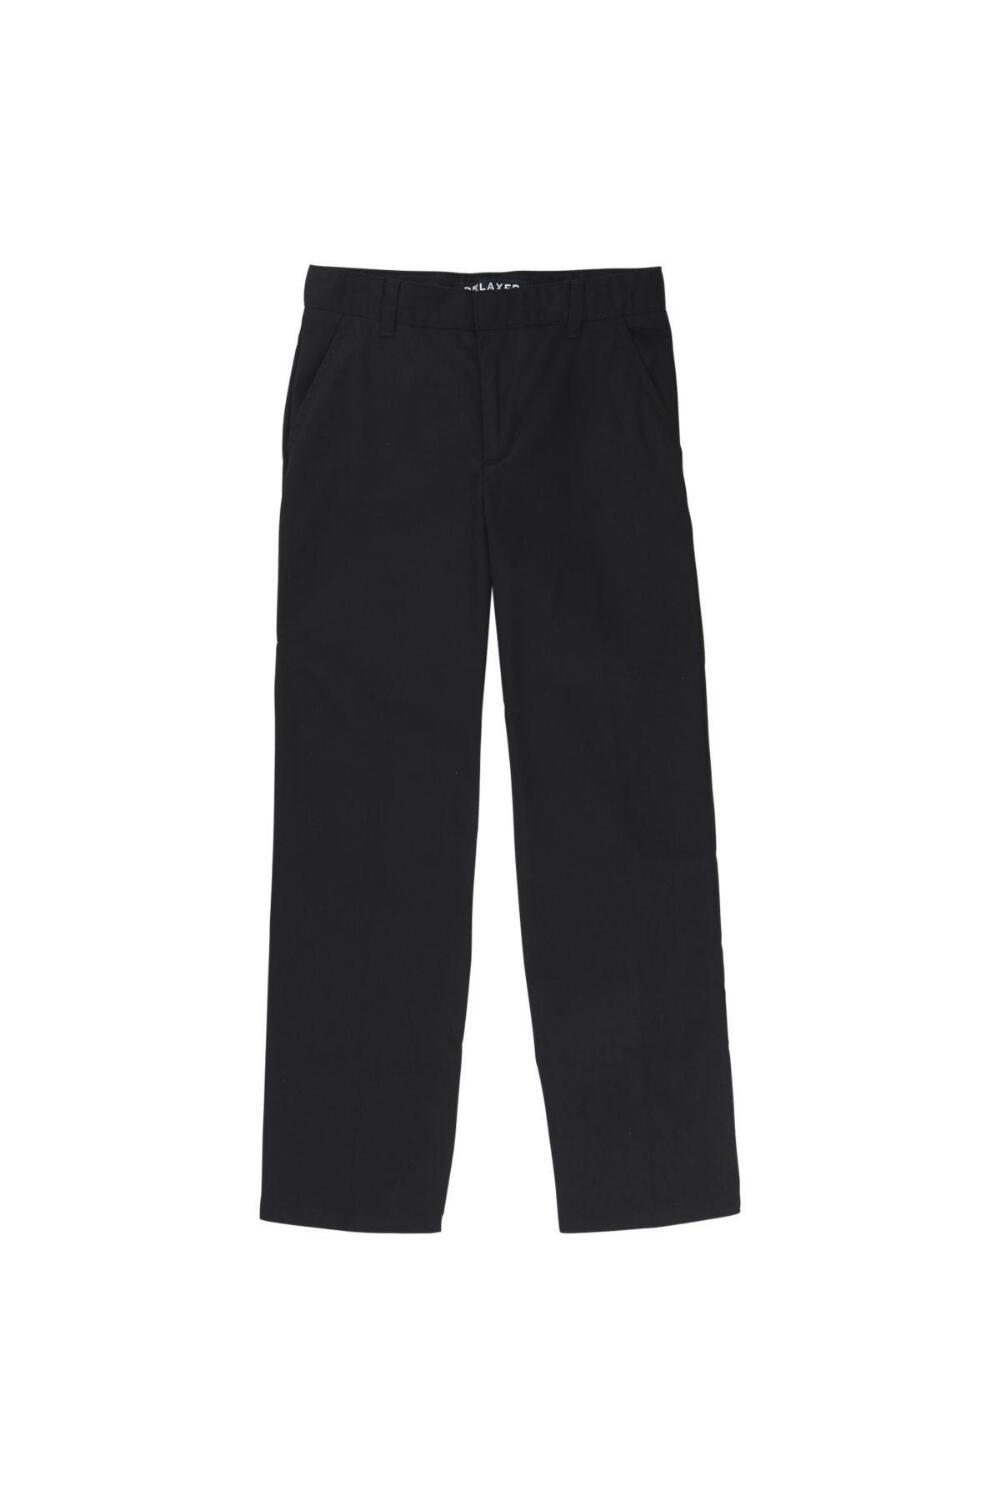 Boy's Adjustable Waist Double Knee Pant (Pant Color: Black, Pant Size: Size 4)